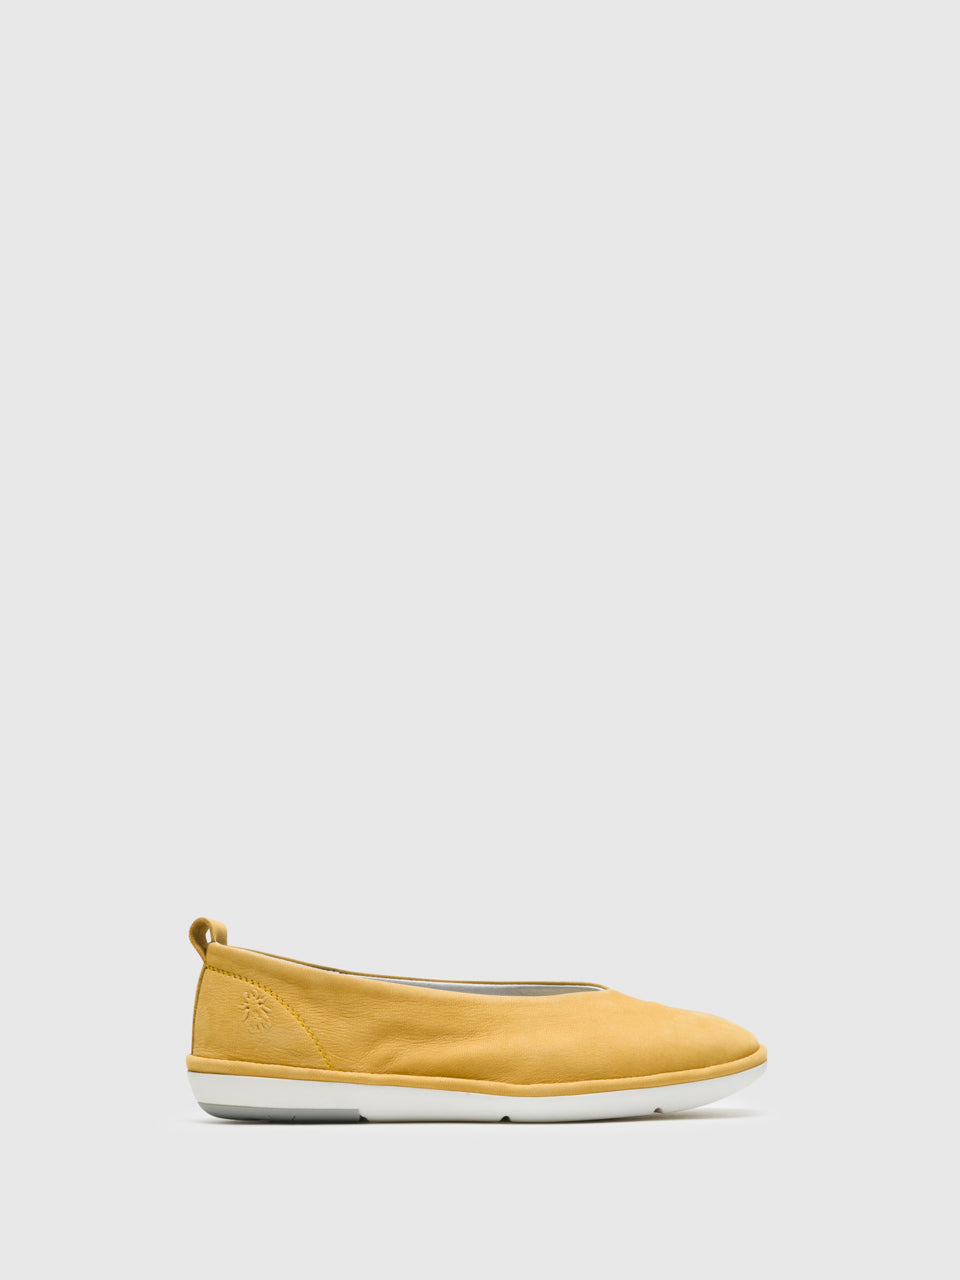 Fly London Yellow Square Toe Ballerinas